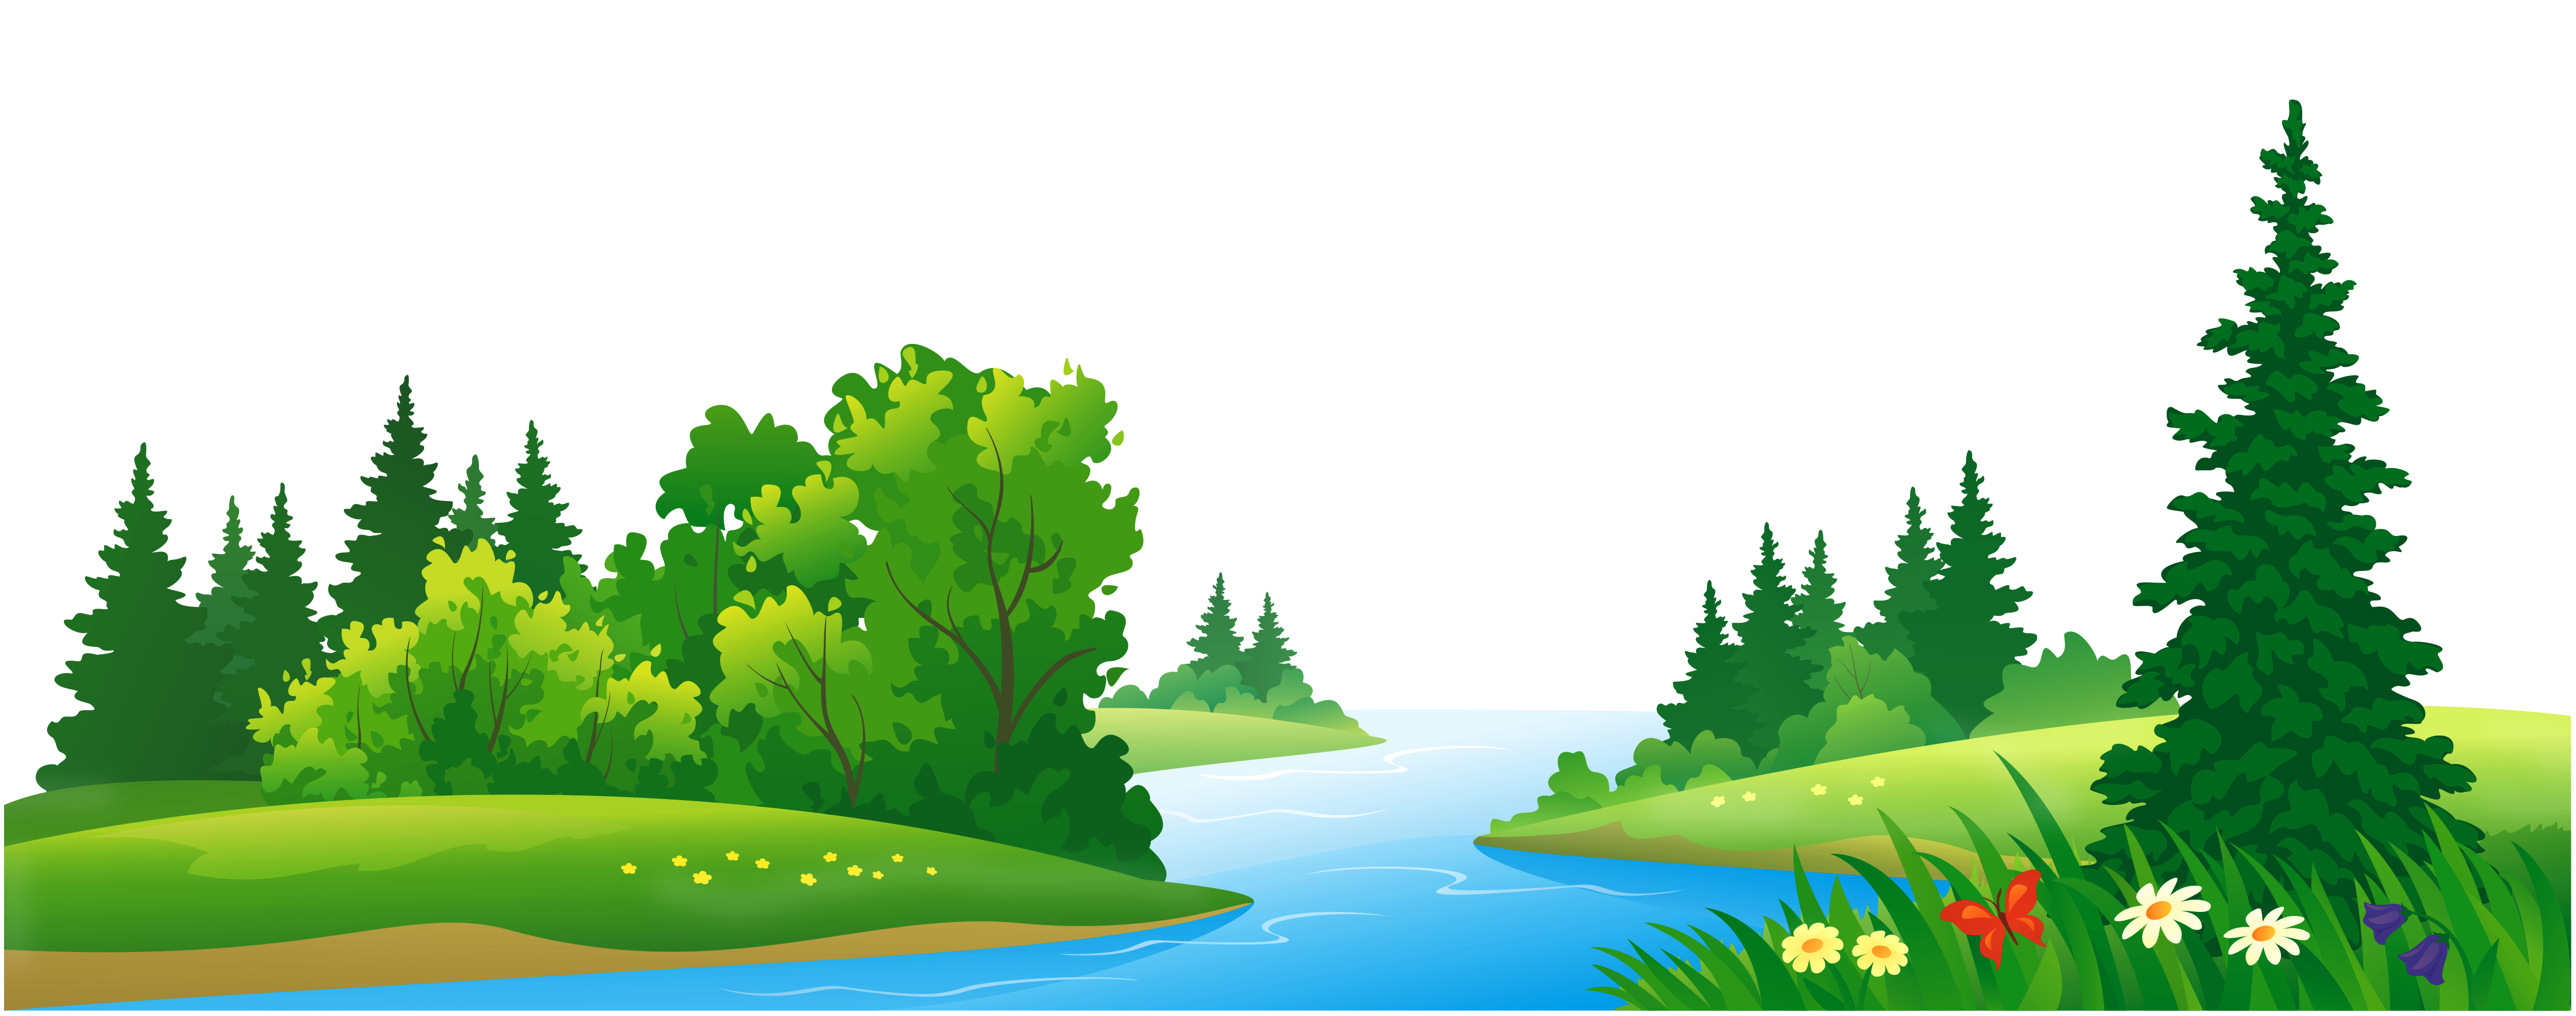 Rainforest images gallery for. Free scenery pictures clipart